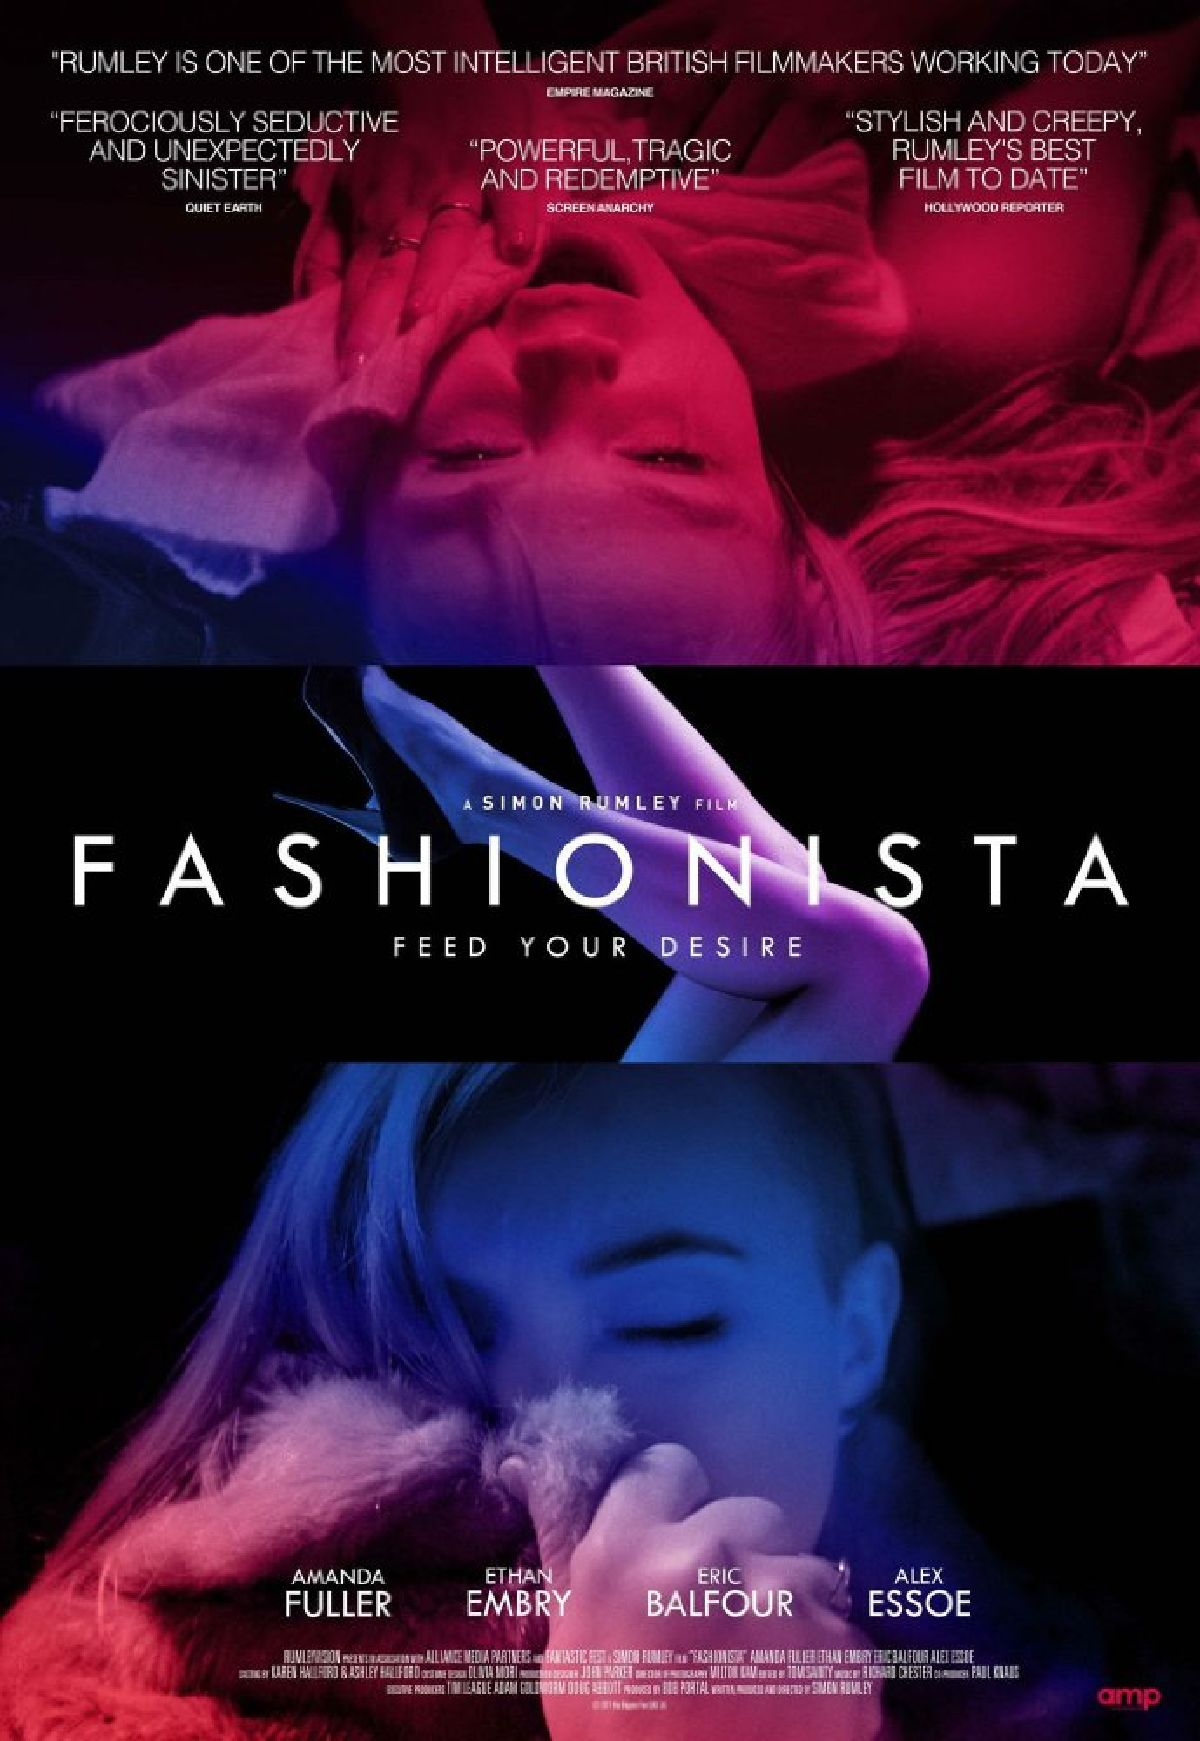 'Fashionista' movie poster